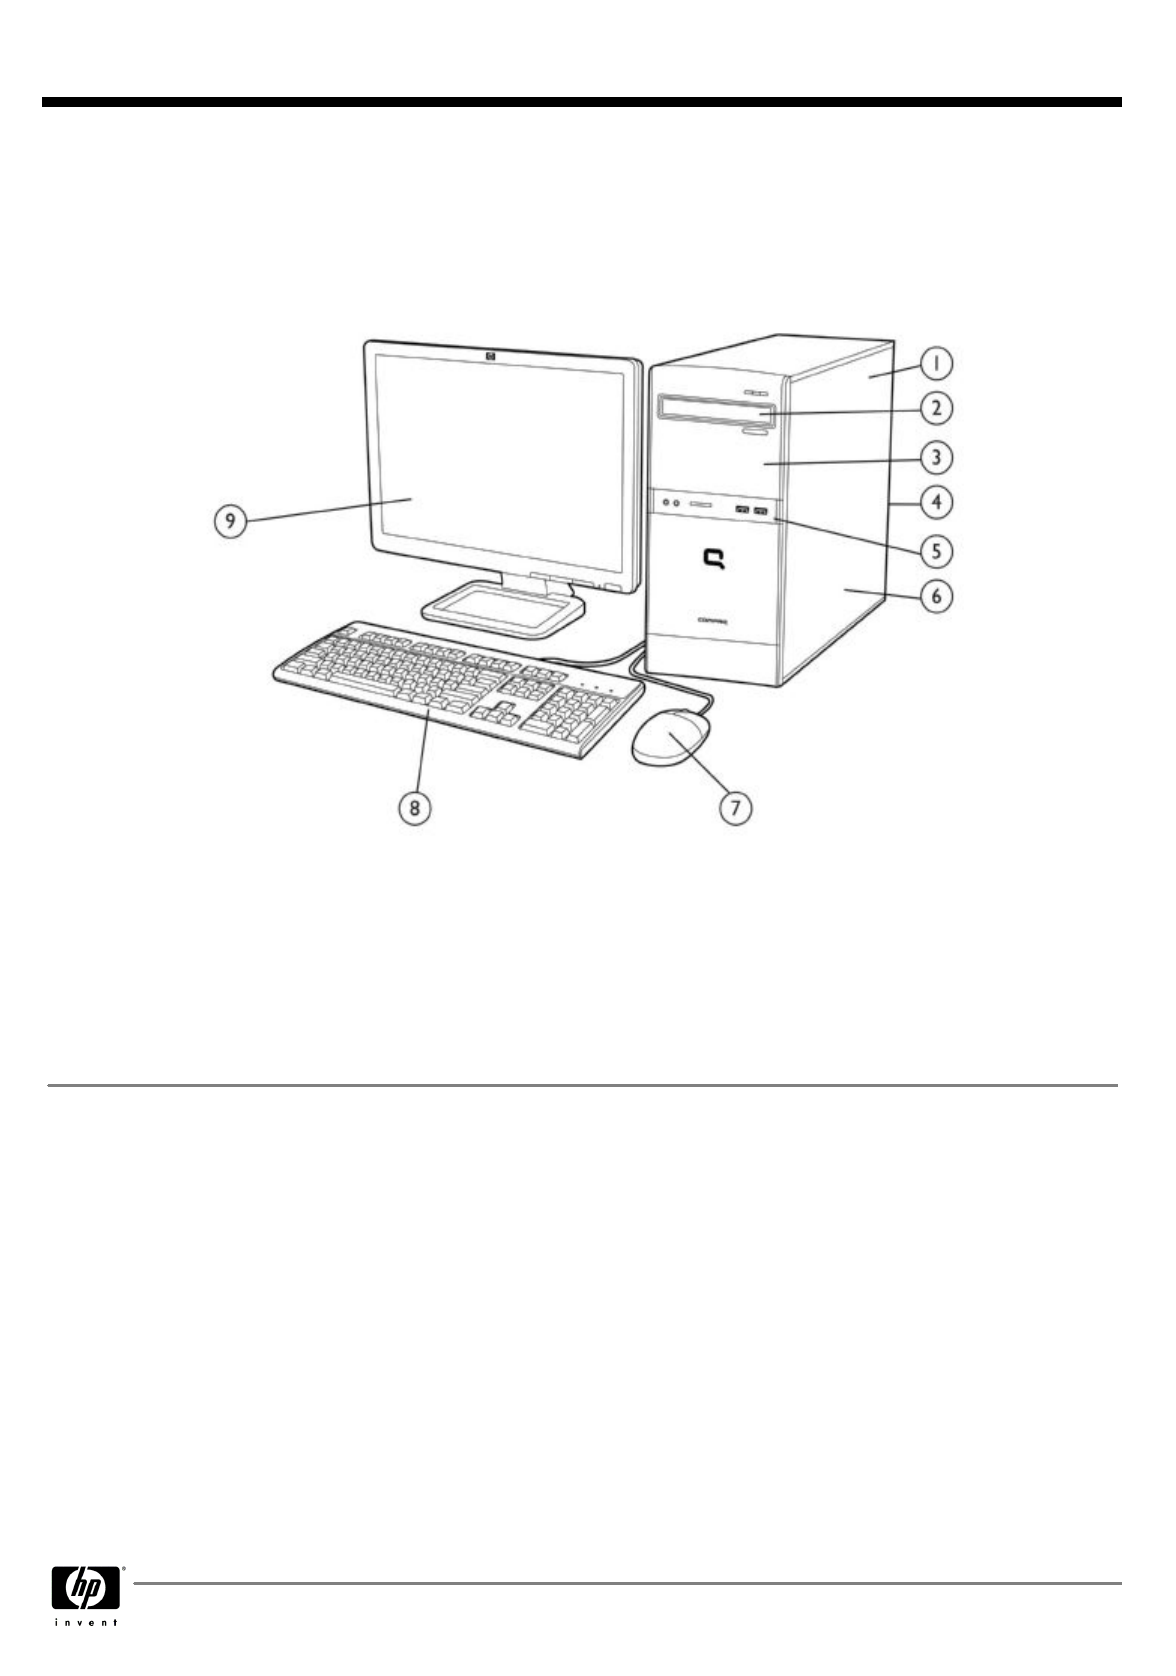 HP (Hewlett-Packard) Personal Computer 500B User Guide